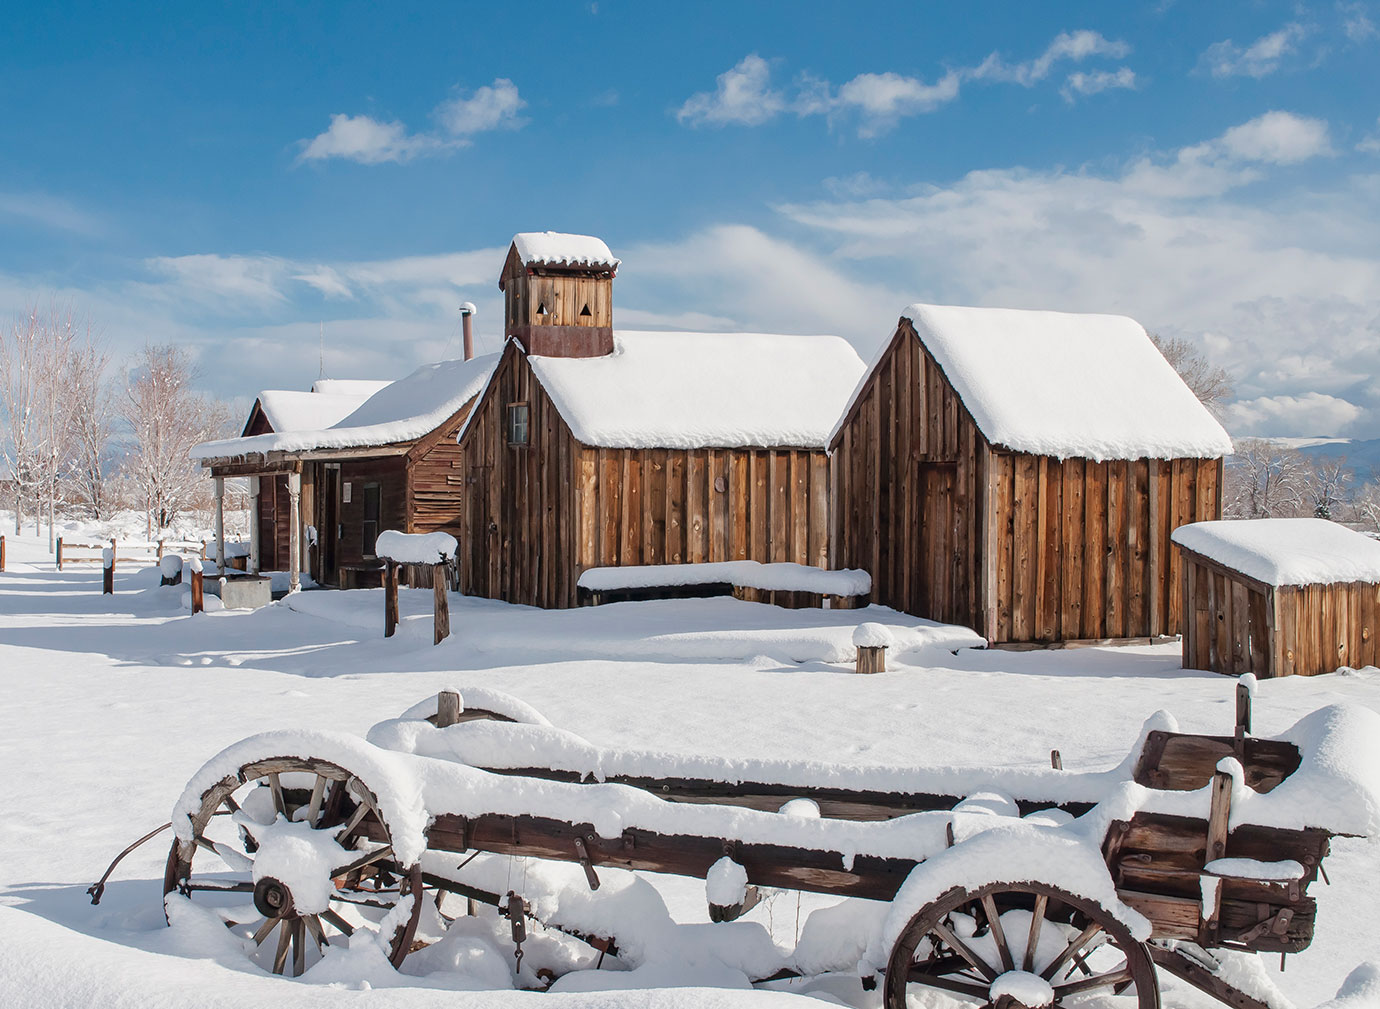 Bartley Ranch in Winter, Photo by Linda Seibert